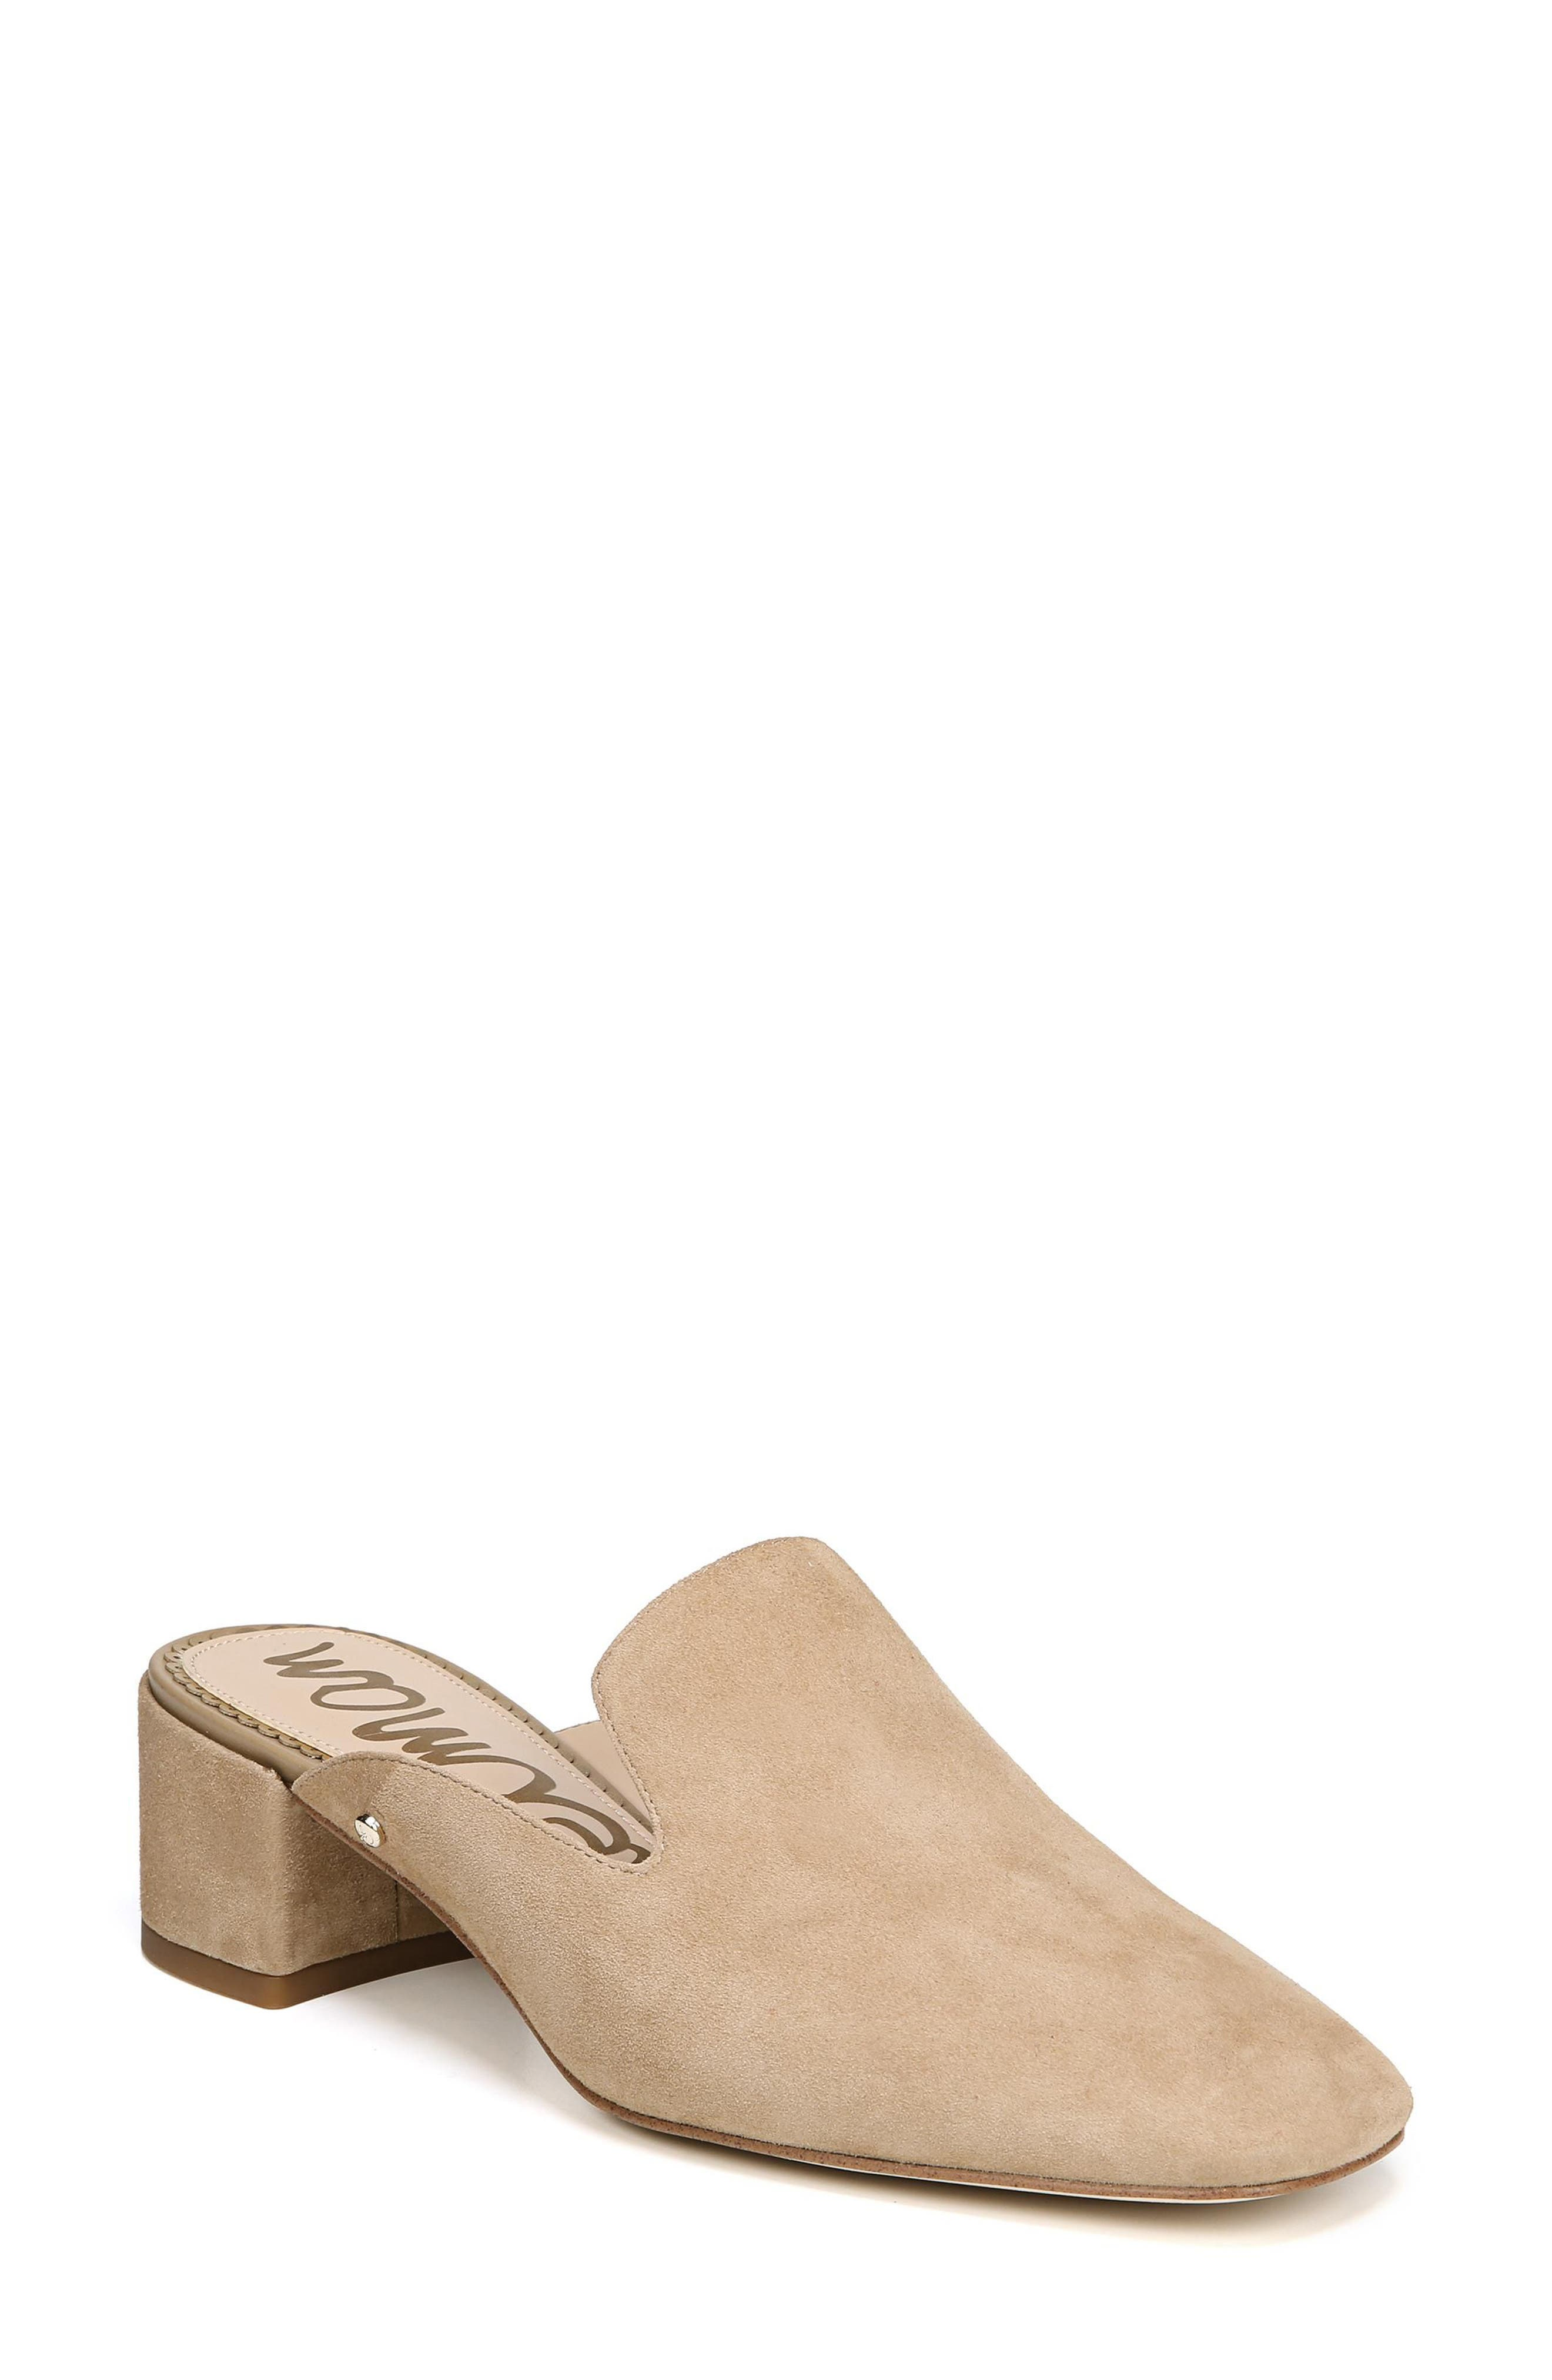 Adair Loafer Mule,                         Main,                         color, OATMEAL LEATHER